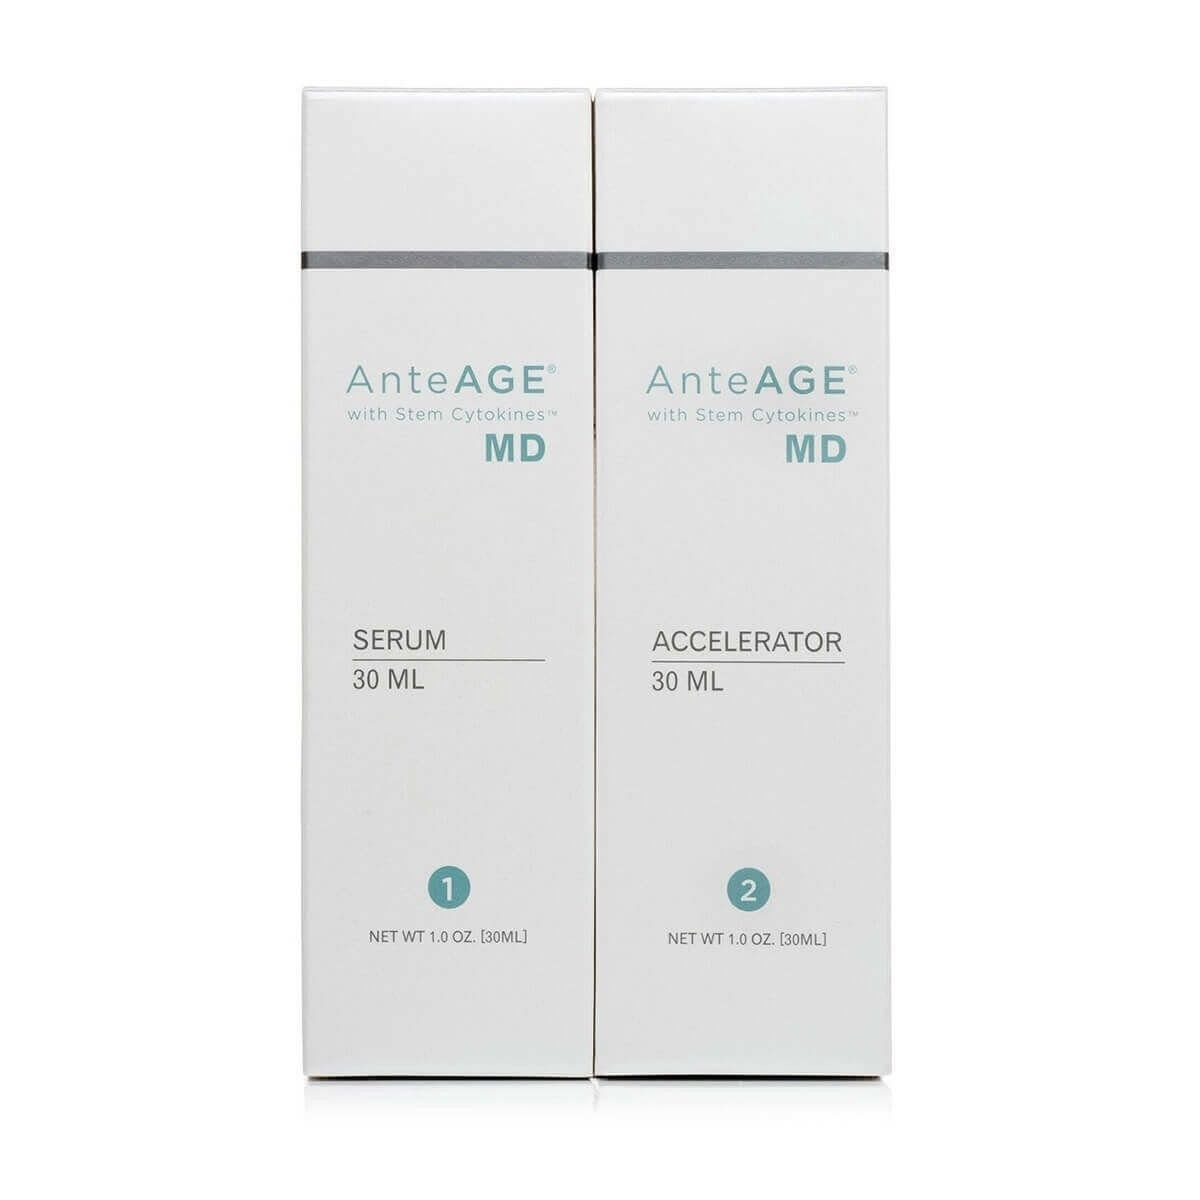 AnteAGE MD. Serum and Accelerator Set Stem Cell Growth Factors Cytokines Skin